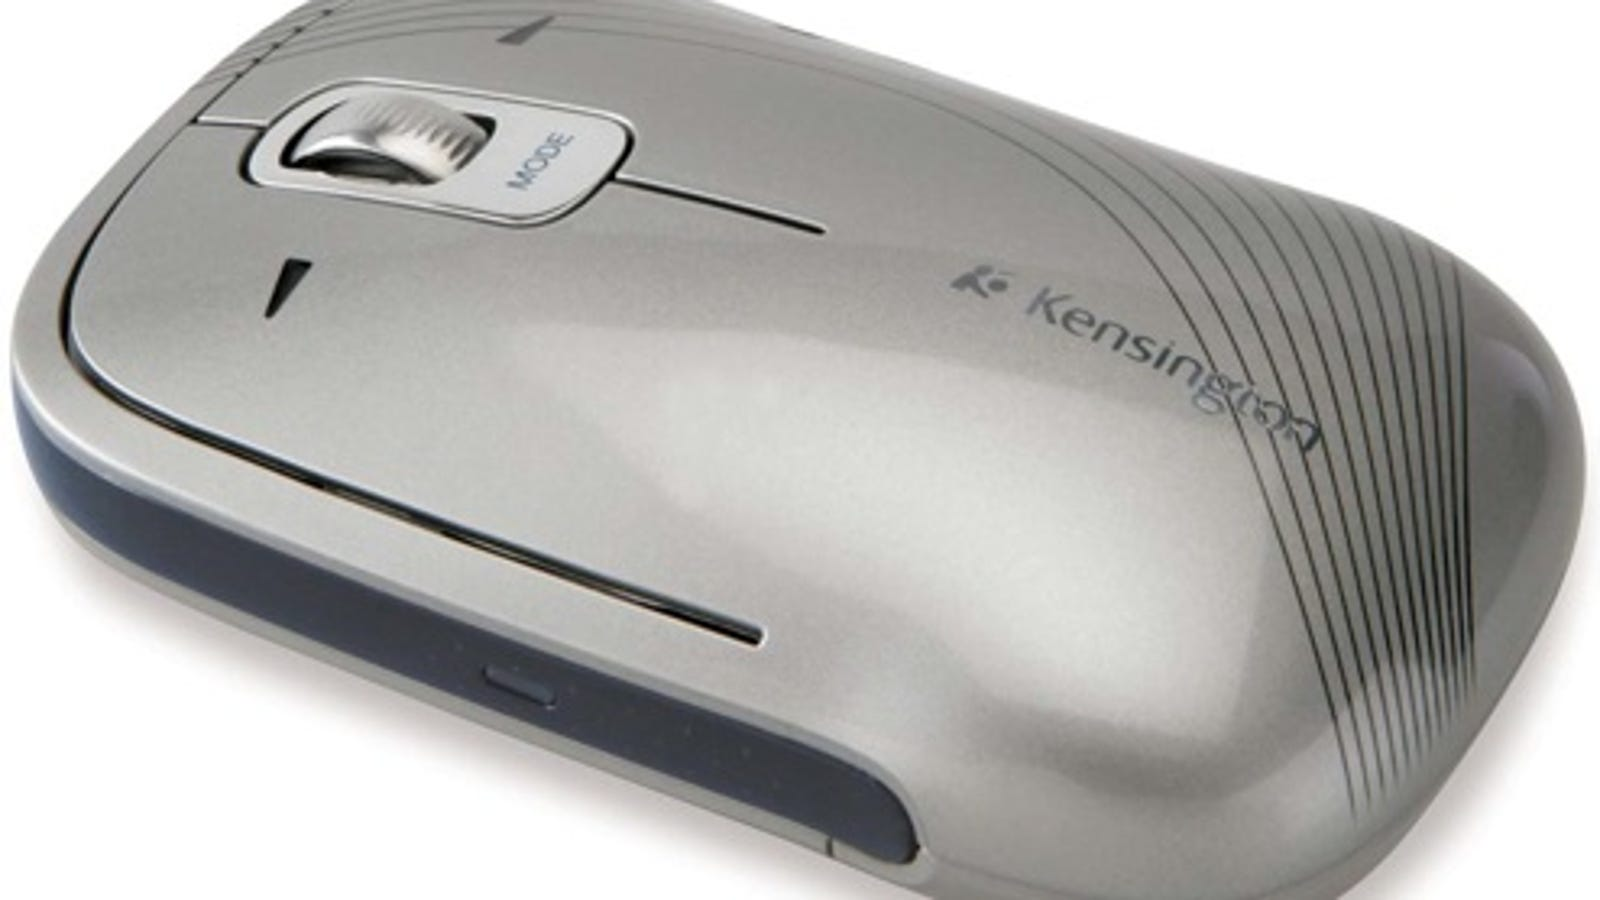 KENSINGTON SLIMBLADE PRESENTER MOUSE DOWNLOAD DRIVER